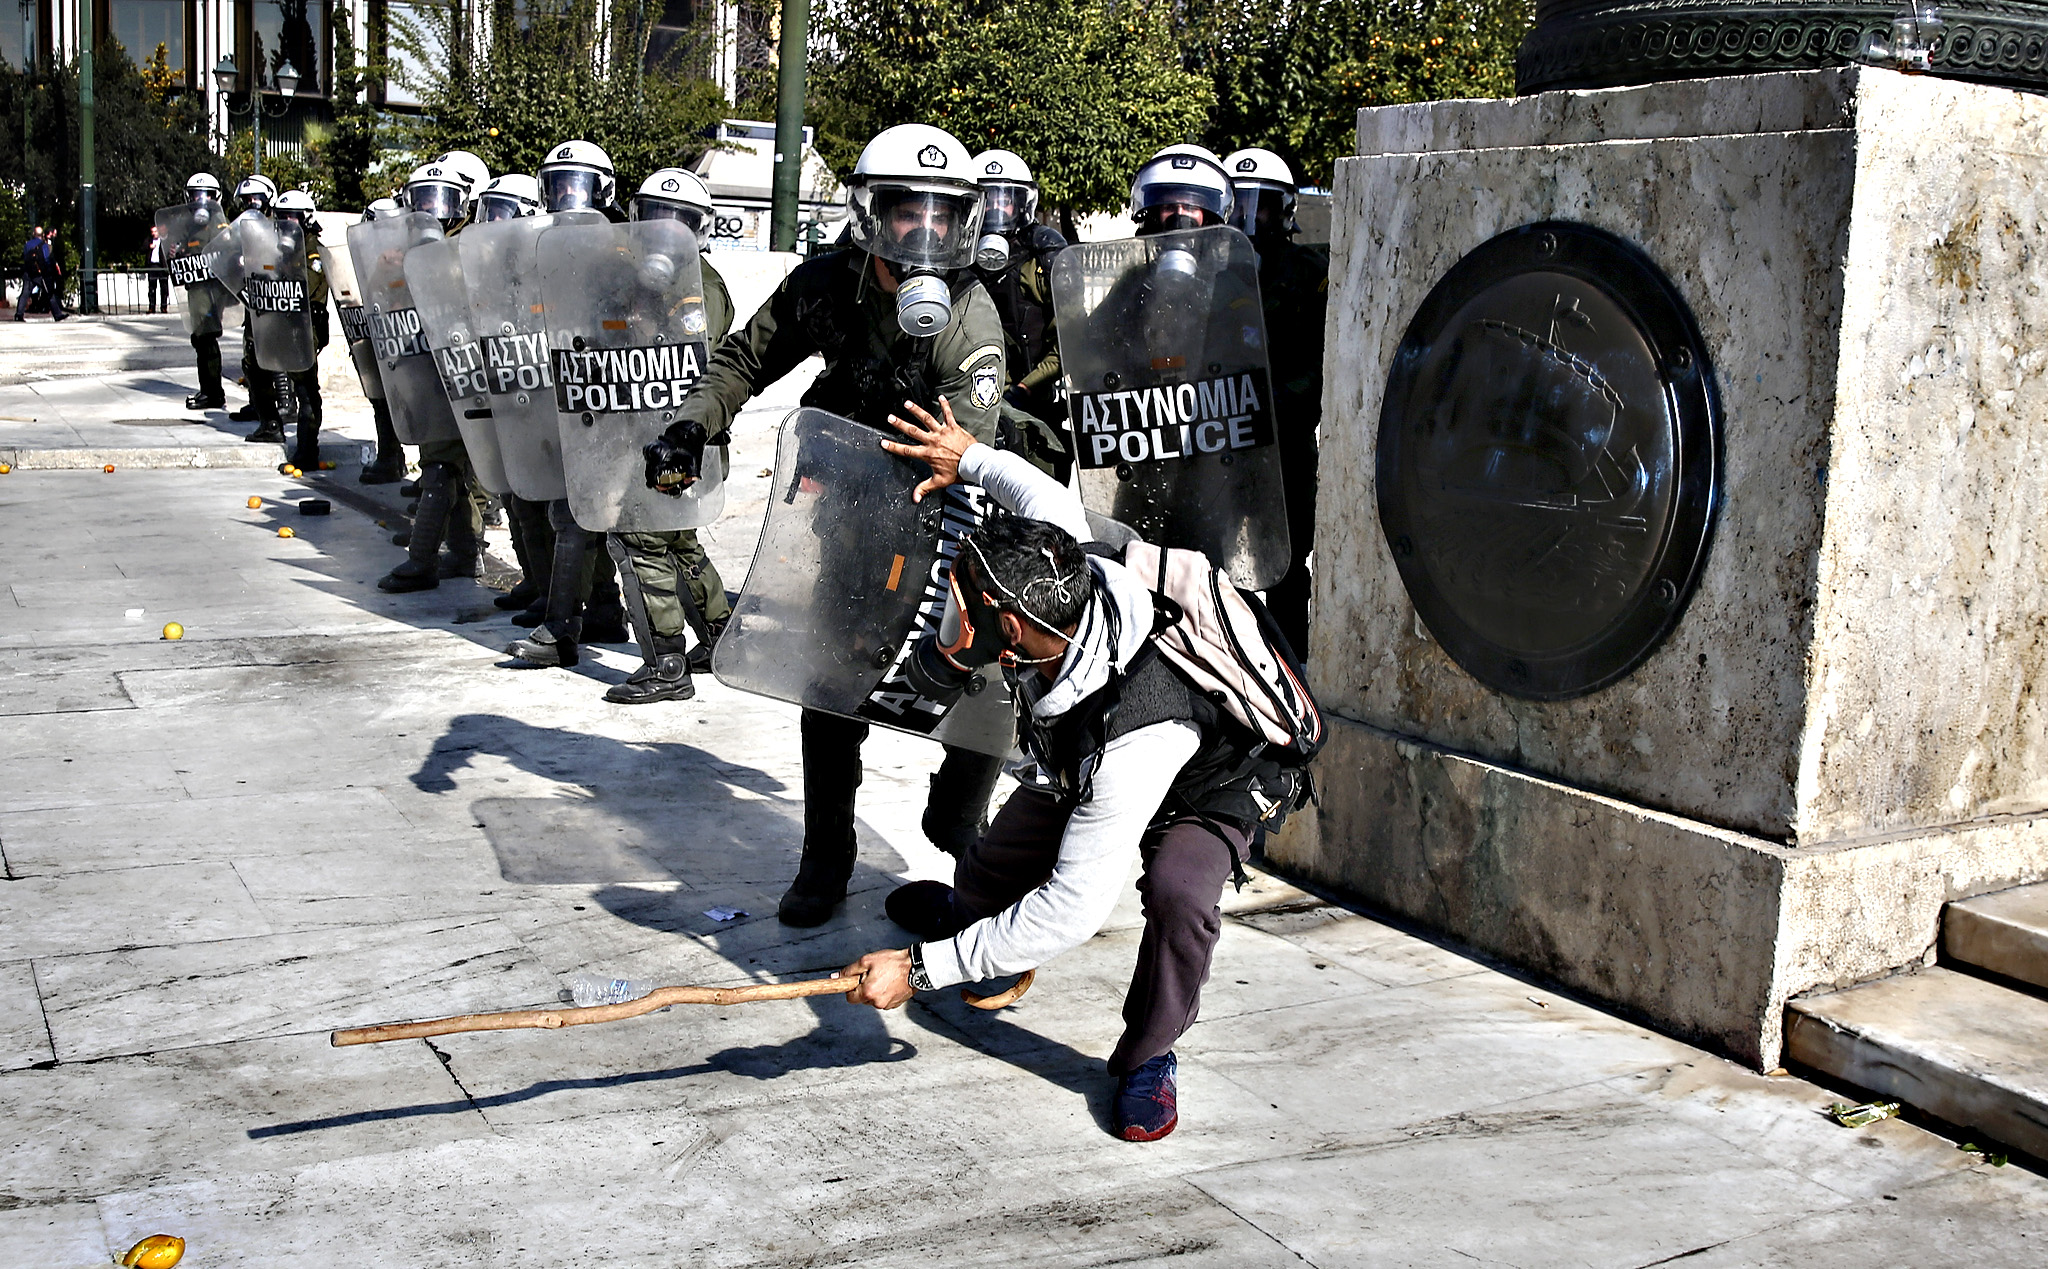 A farmer tries to protect himself as he clashes with a riot policeman during an anti-government protest at central Syntagma square in Athens, Wednesday, Nov. 18, 2015. Greek farmers protesting over planned tax and pension reforms demanded by the country's bailout creditors have clashed outside parliament with police, who used tear gas to disperse them.